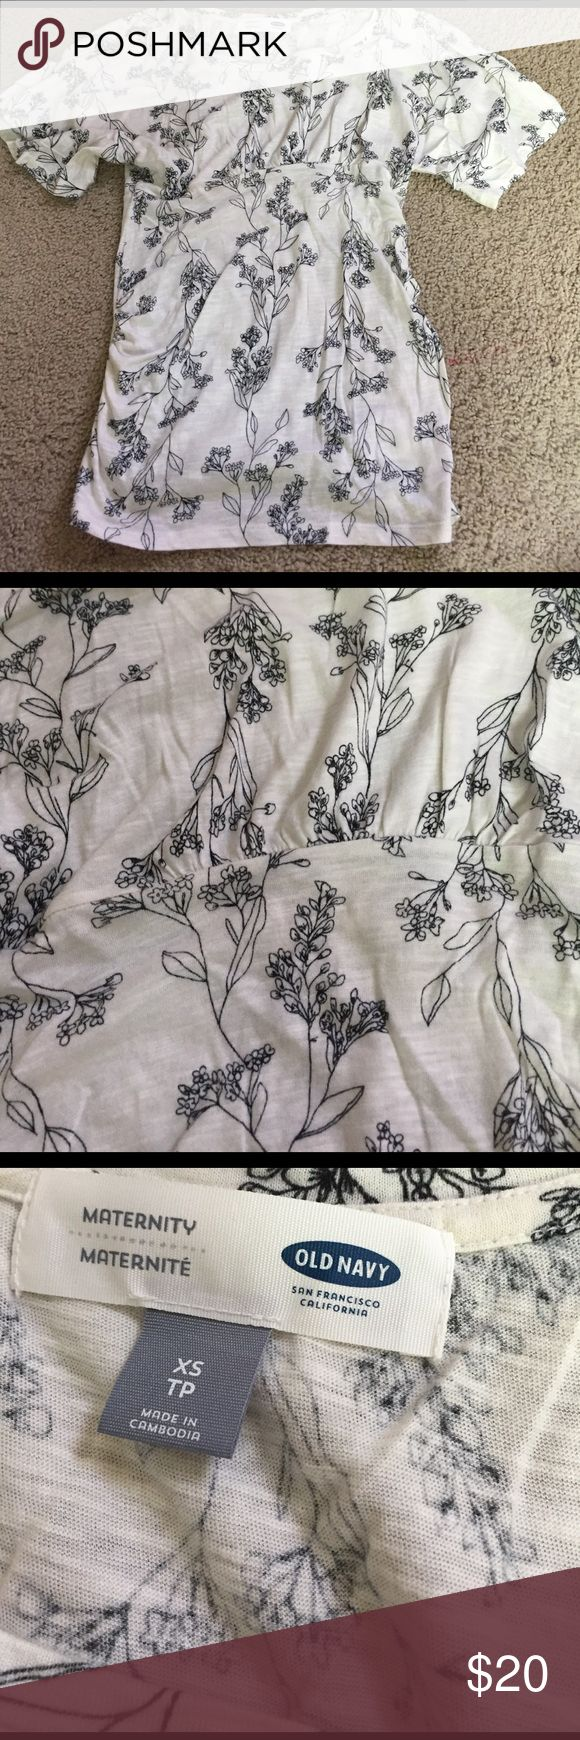 Old Navy maternity top Ivory background with black floral design slightly batwing sleeves scoop neck and gathered at sides. Lightweight and very comfortable. Sz XS. Great condition! Always buy your pre pregnancy size for maternity. Bundle and save! Old Navy Tops Blouses